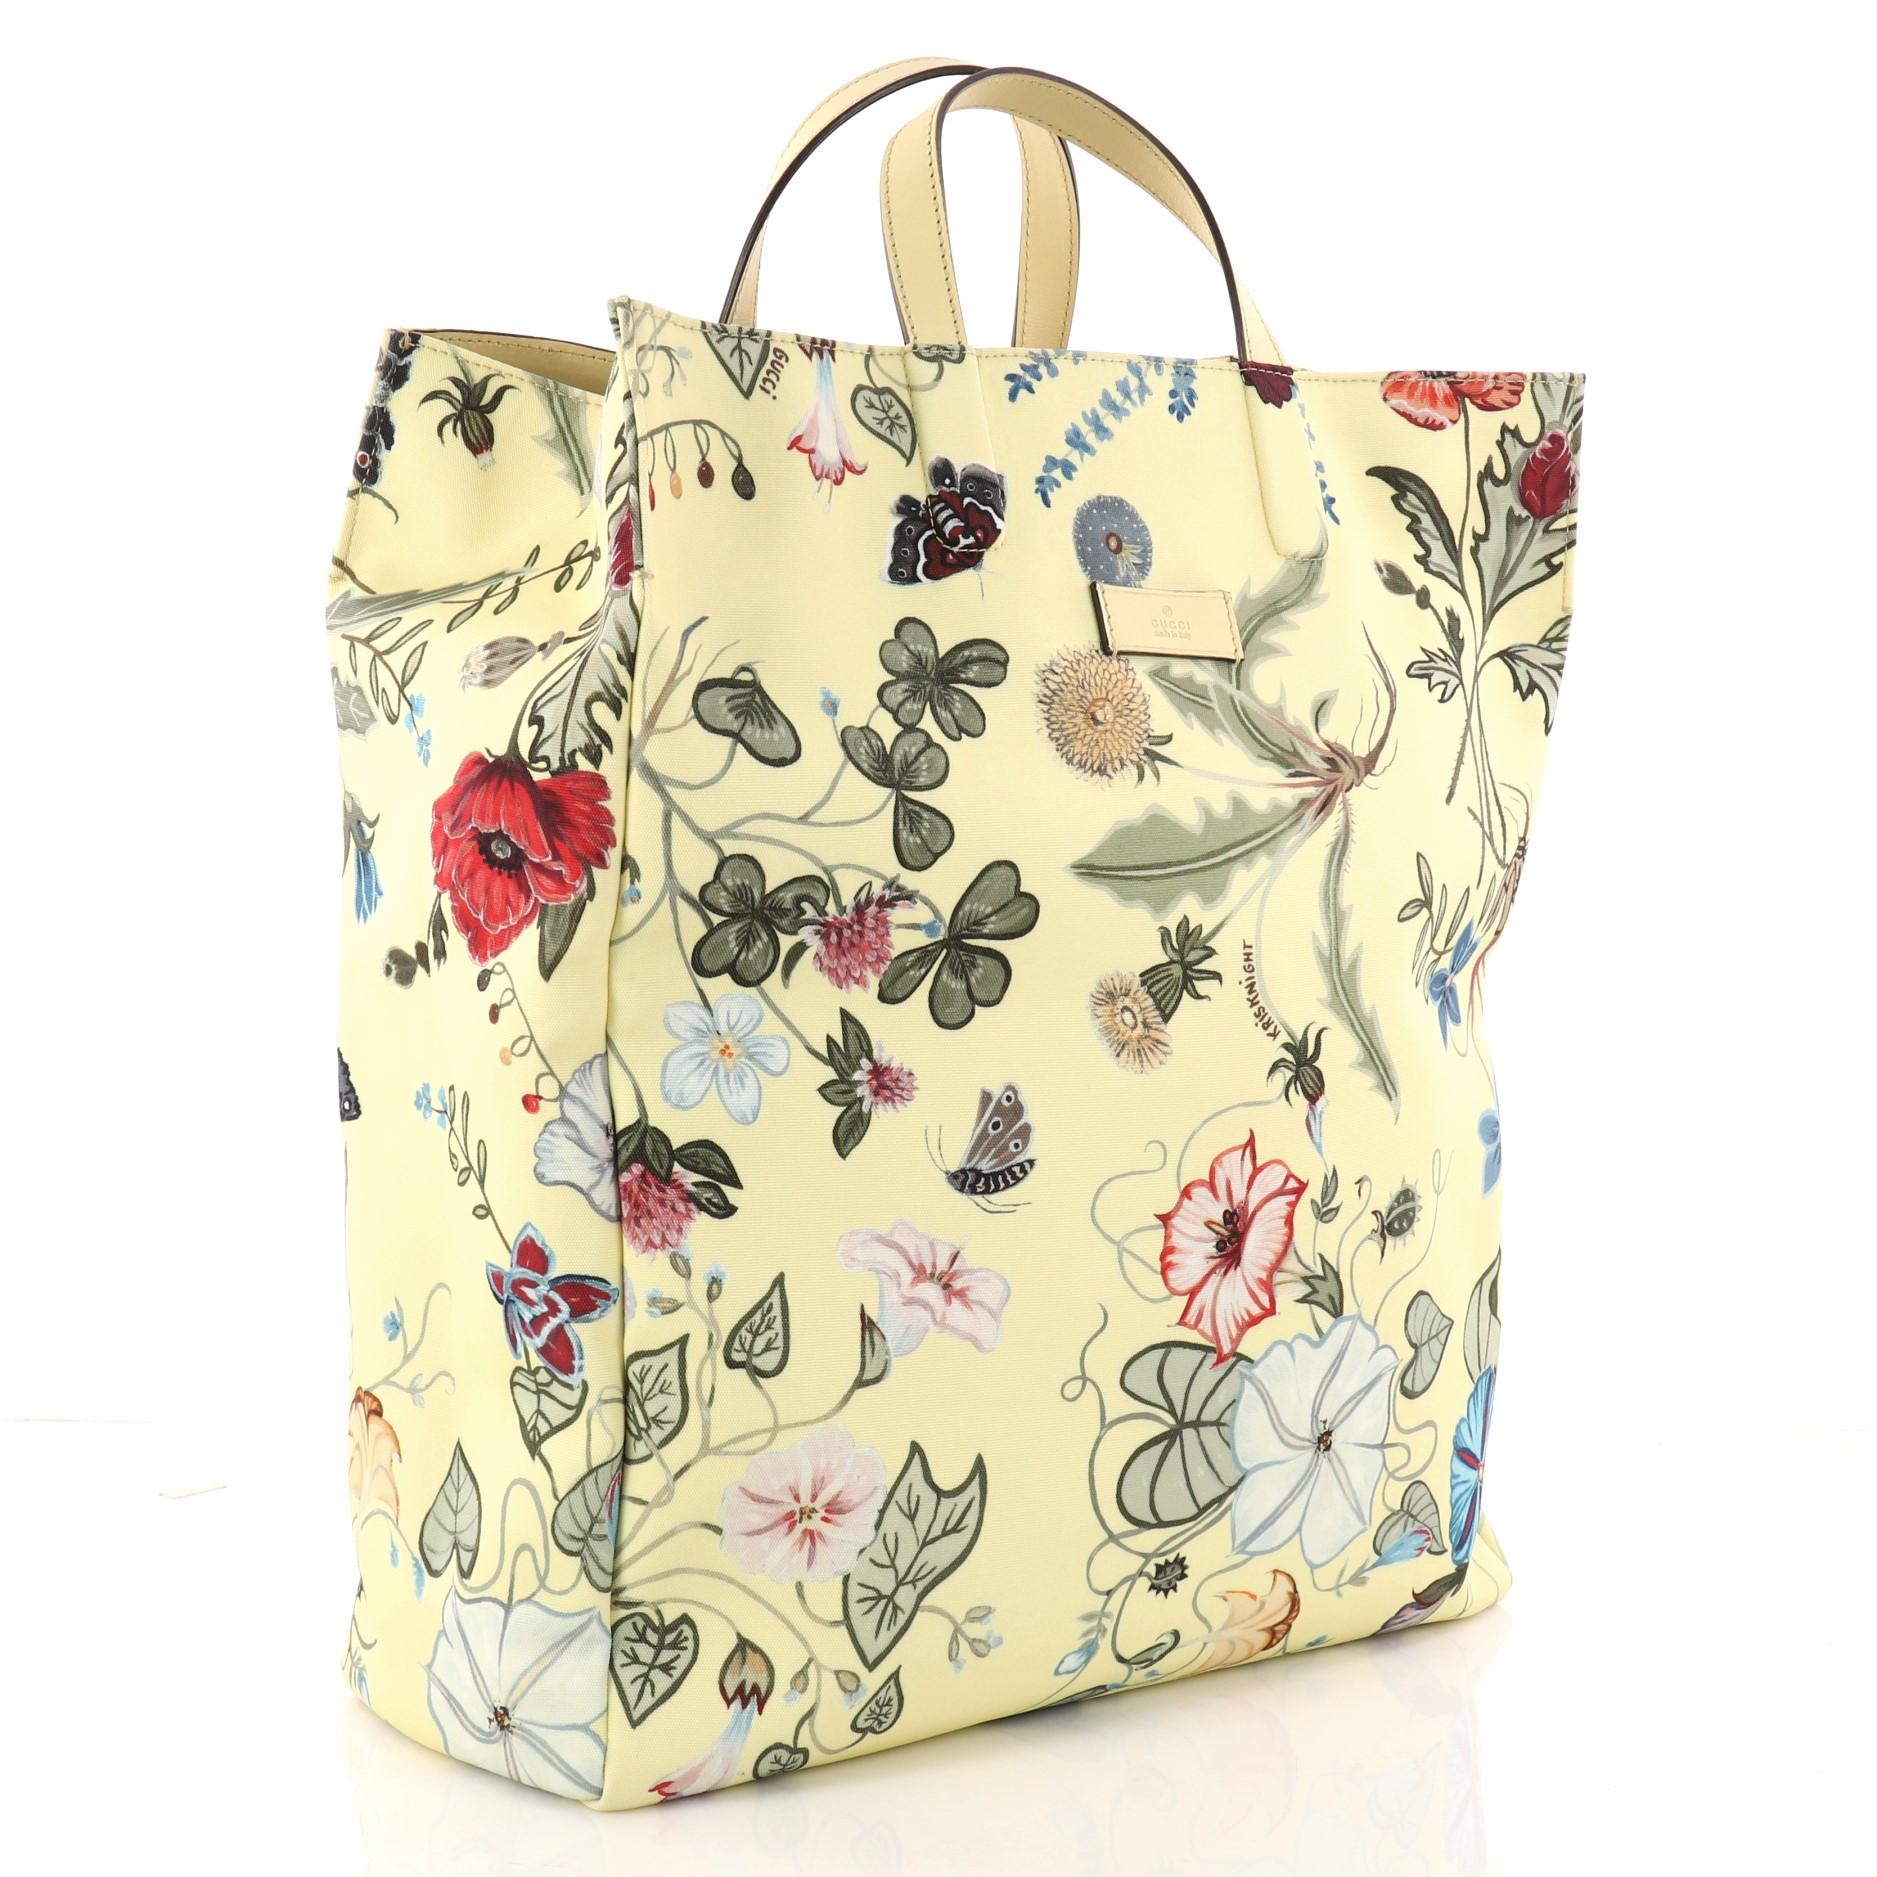 998186d0377 Gucci G-Active Knight Tote Flora Canvas Tall i For Sale at 1stdibs